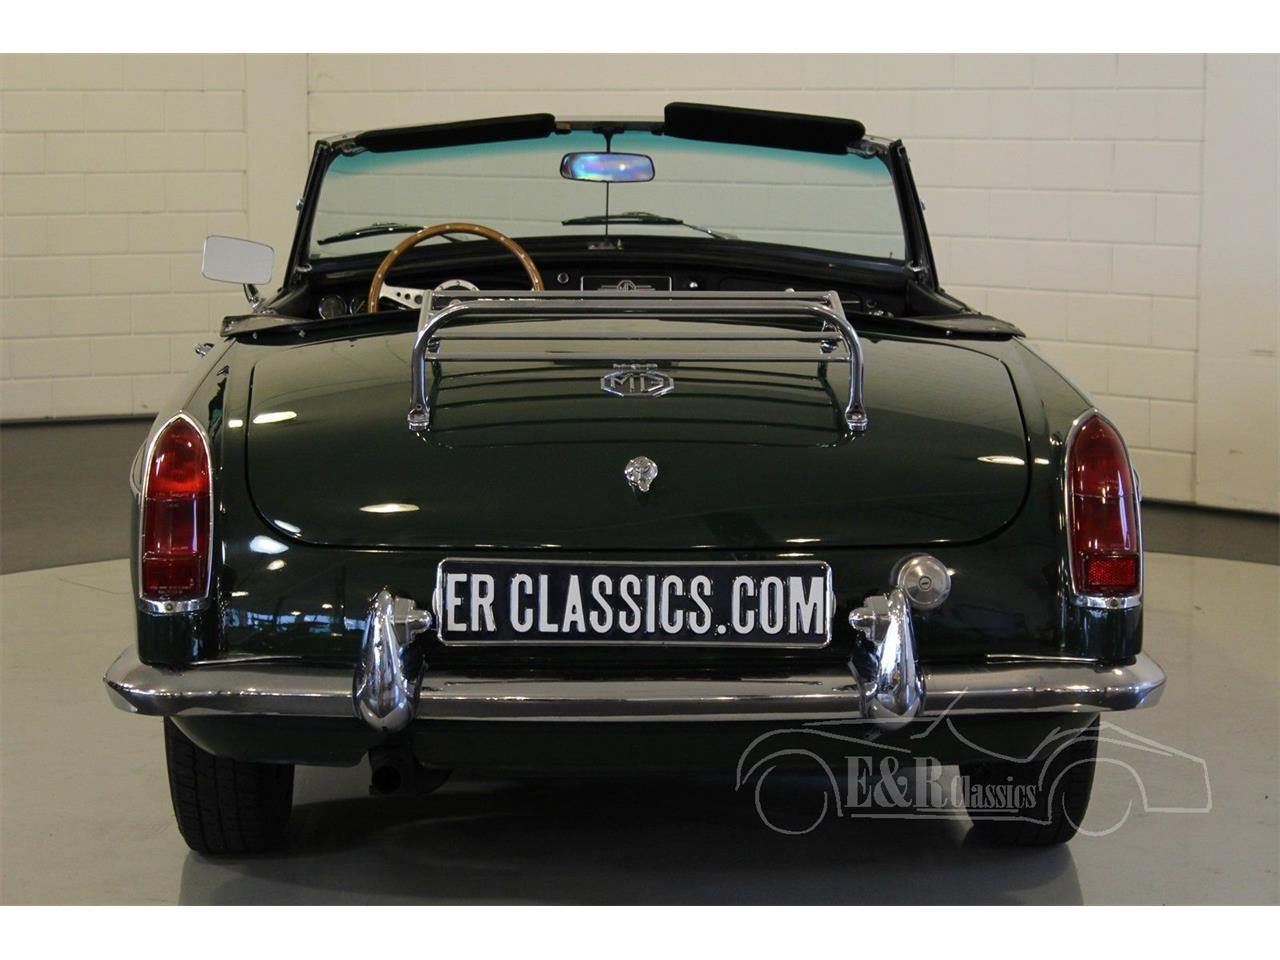 Large Picture of Classic 1964 MG MGB located in Waalwijk noord brabant - $27,950.00 - Q178